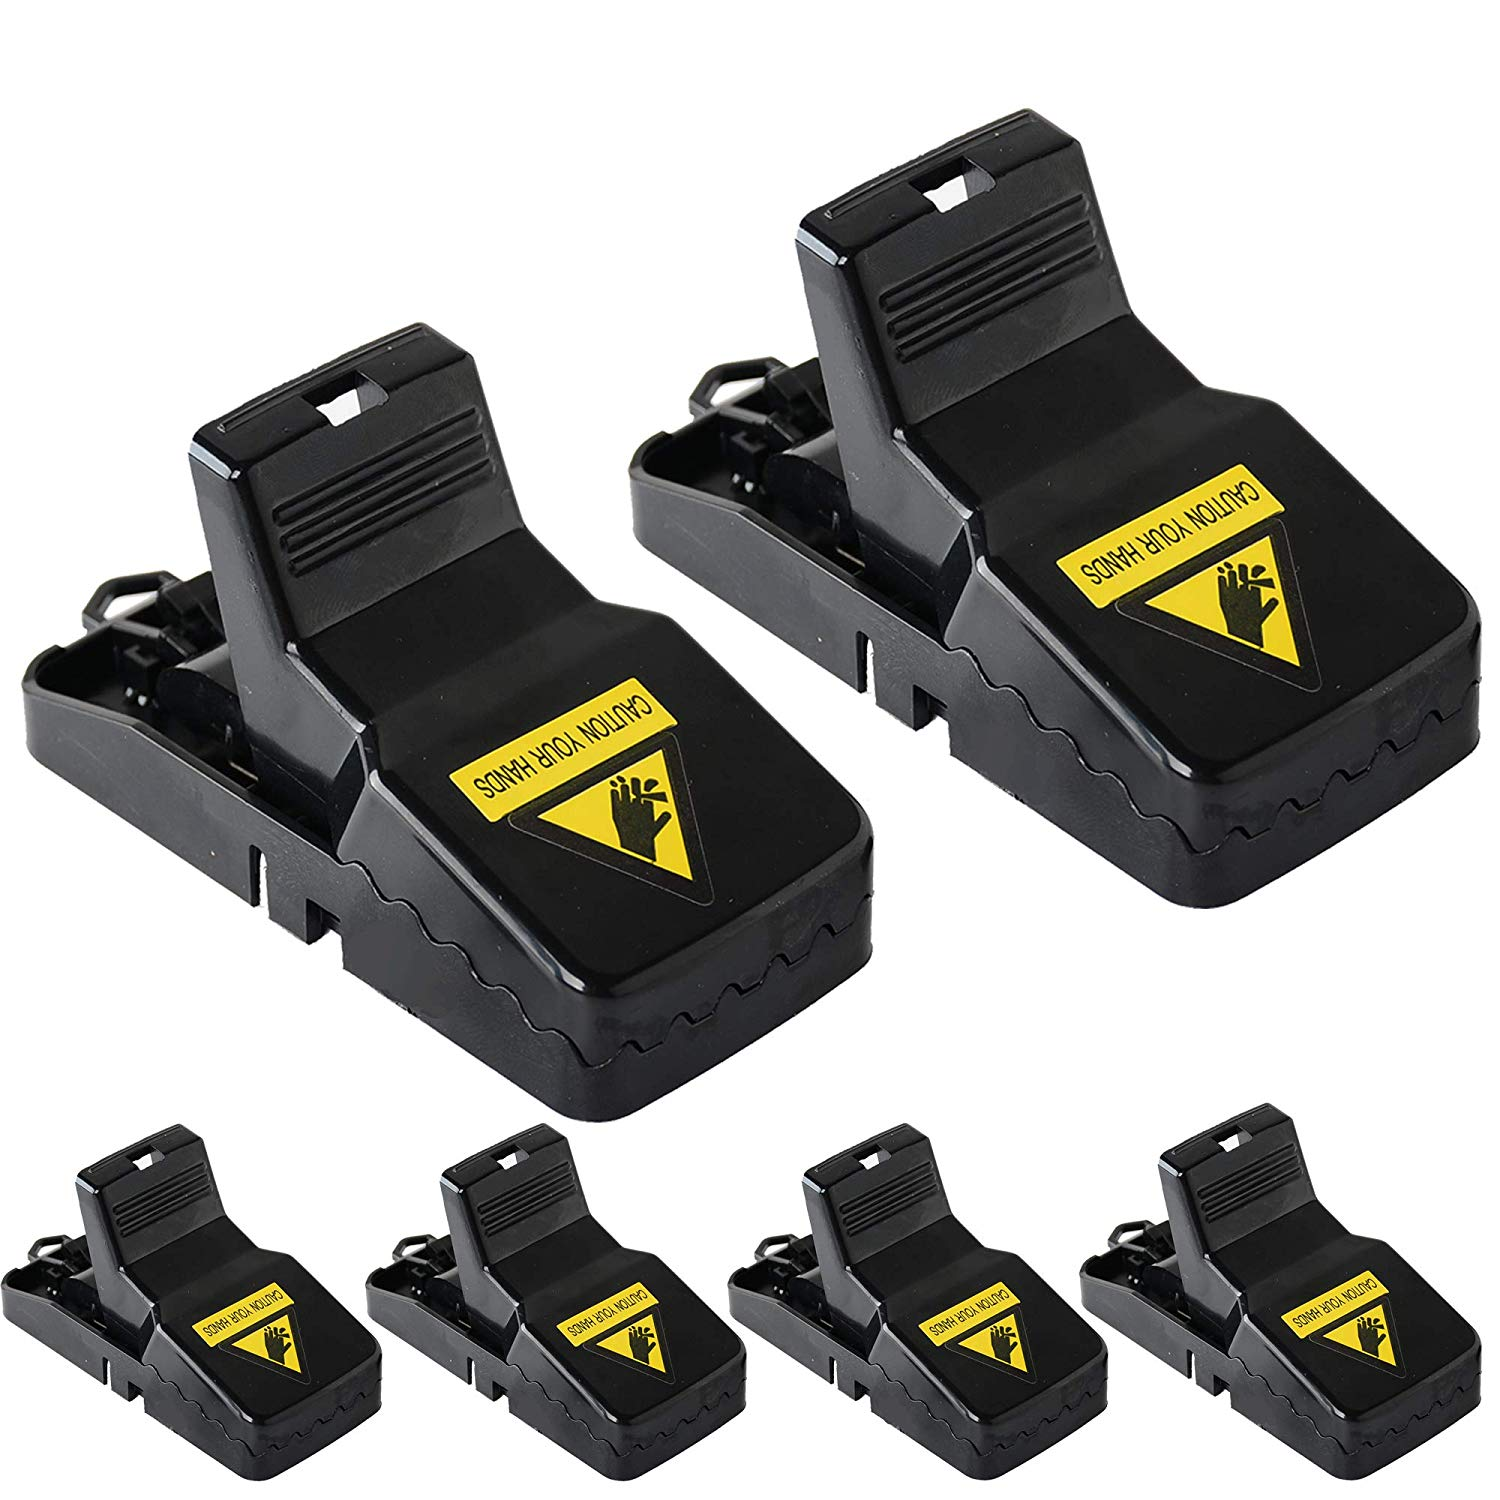 pengxiang Diaotec Mouse Trap, Rats/Mice/Rodents Snap Traps That Work Quick Kill - Sensitive Effective Mice Control/Catcher (6 Pack)